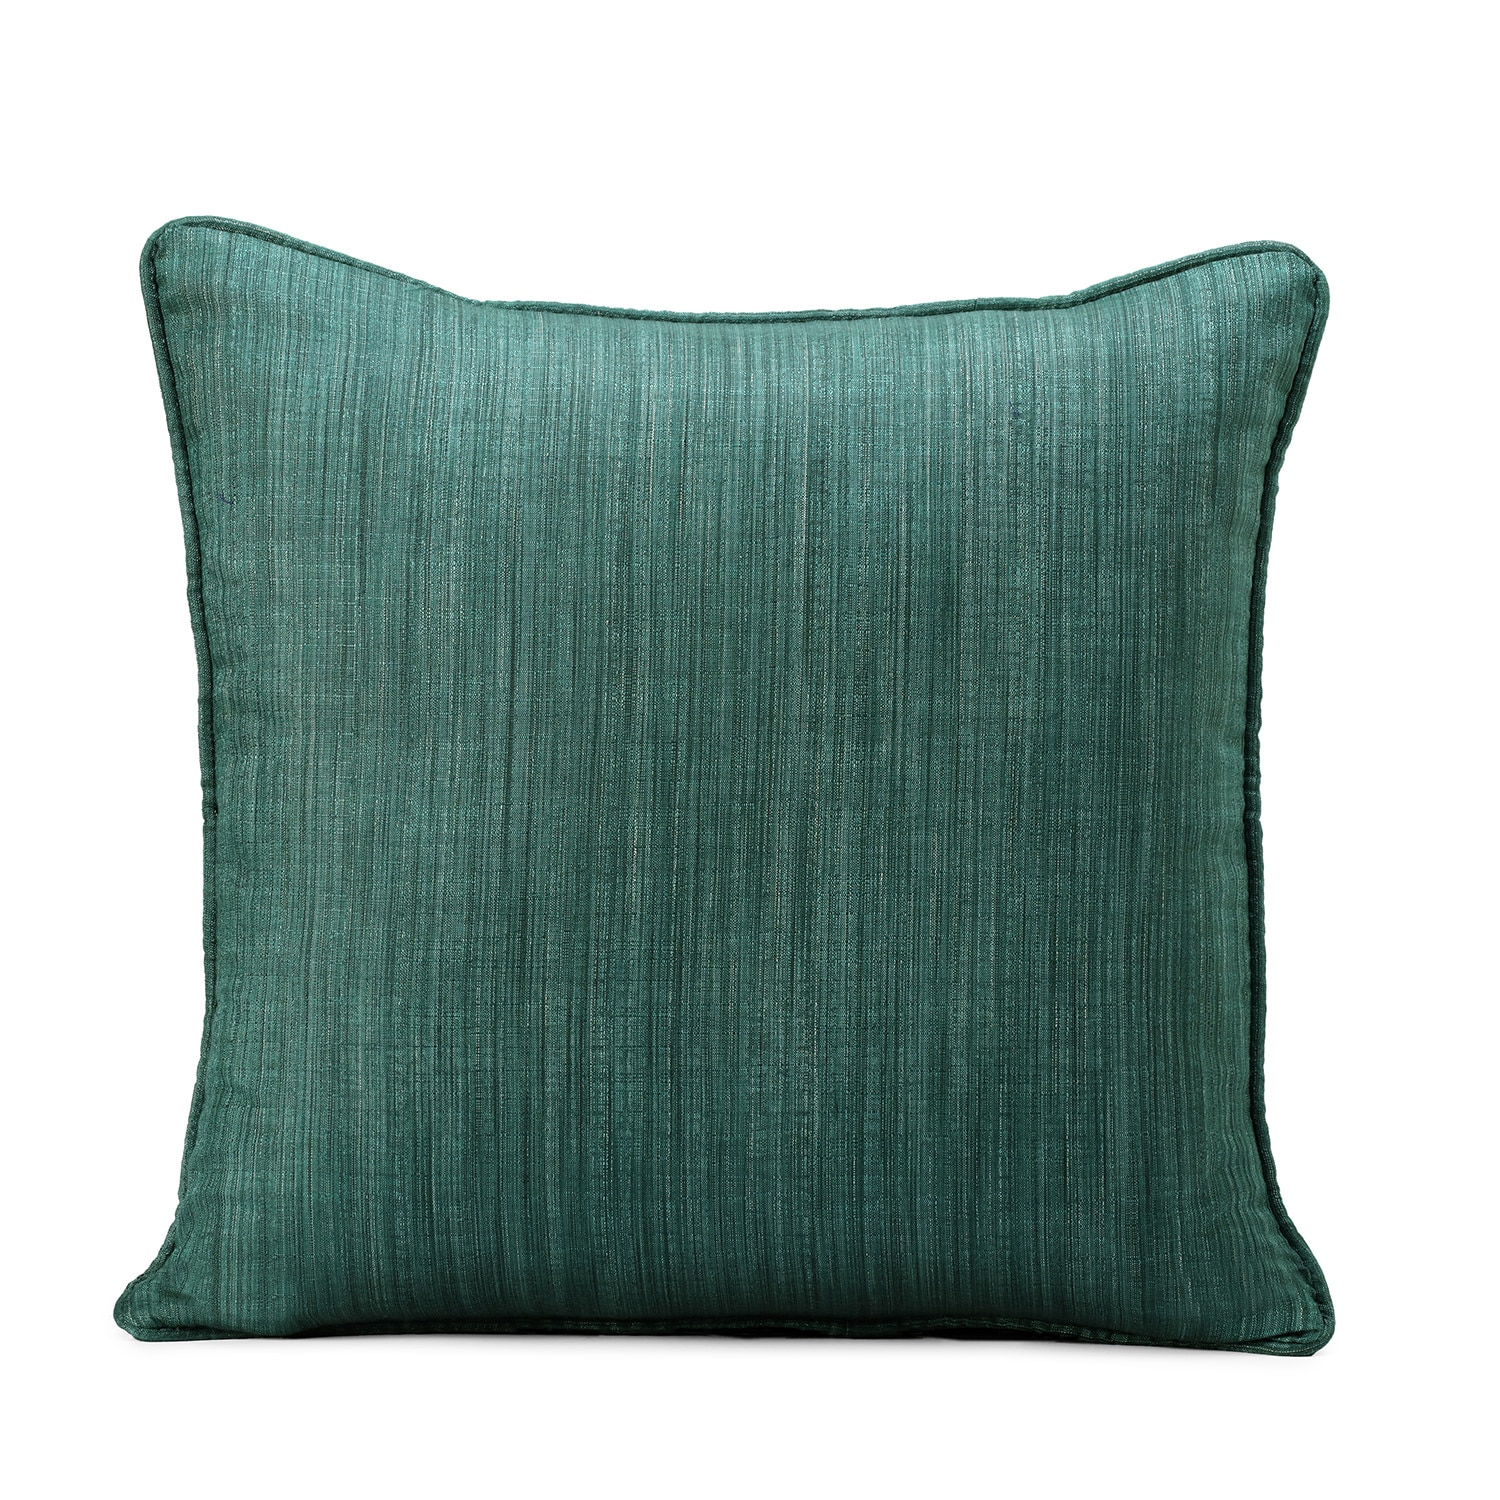 Basil Green Designer Shantung Faux Silk Cushion Cover - Pair